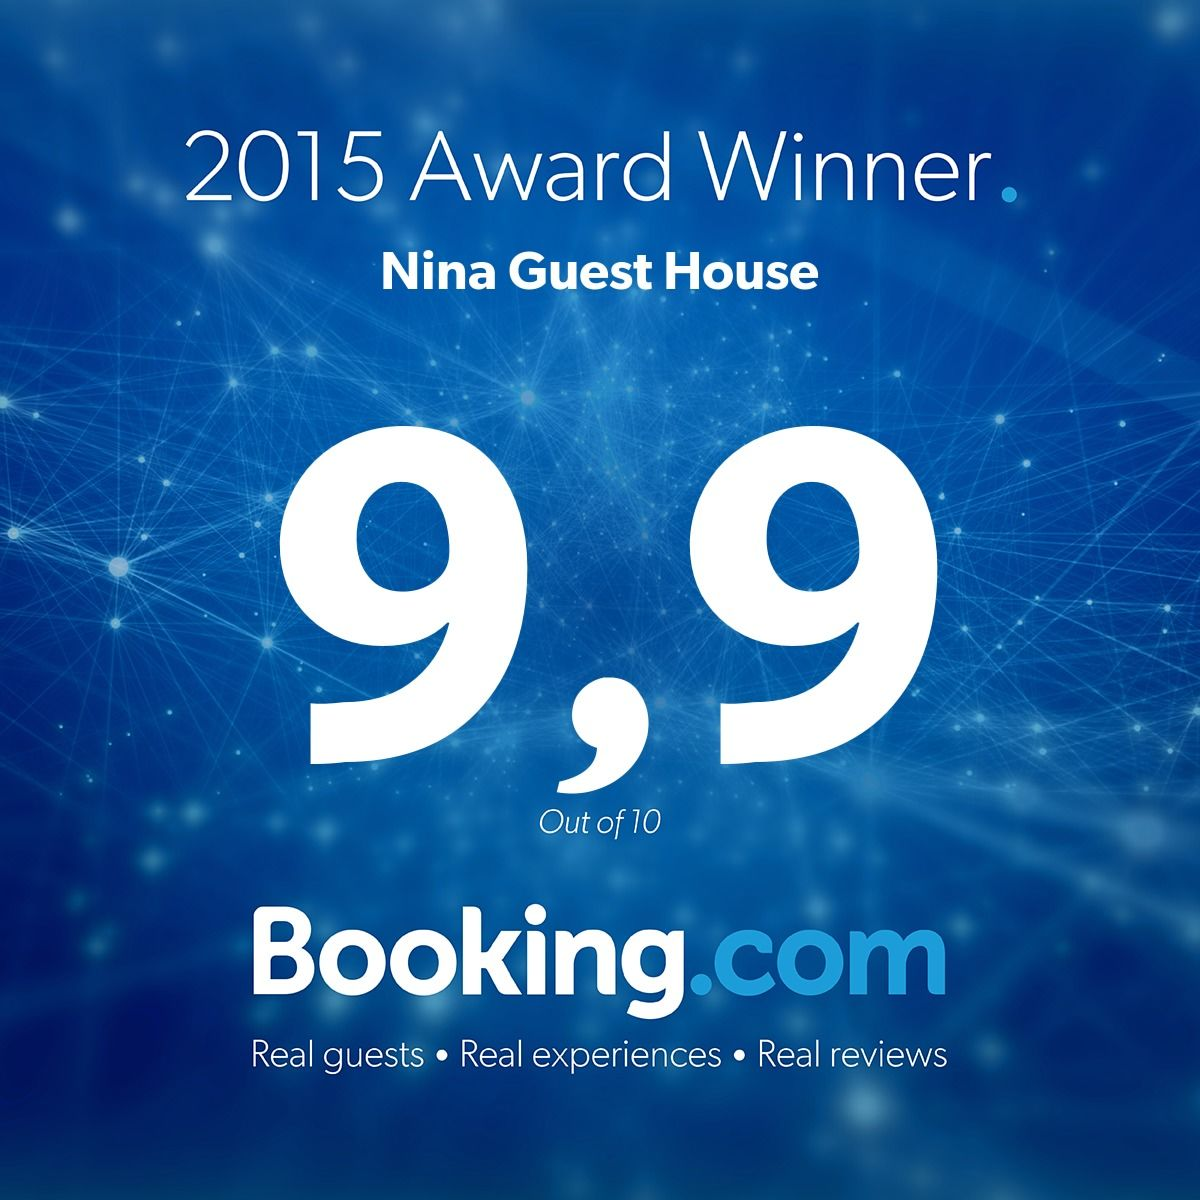 Avarage 2015 Rating of Vacation Rental Home Nina Guest House on Booking.com 9.9/10